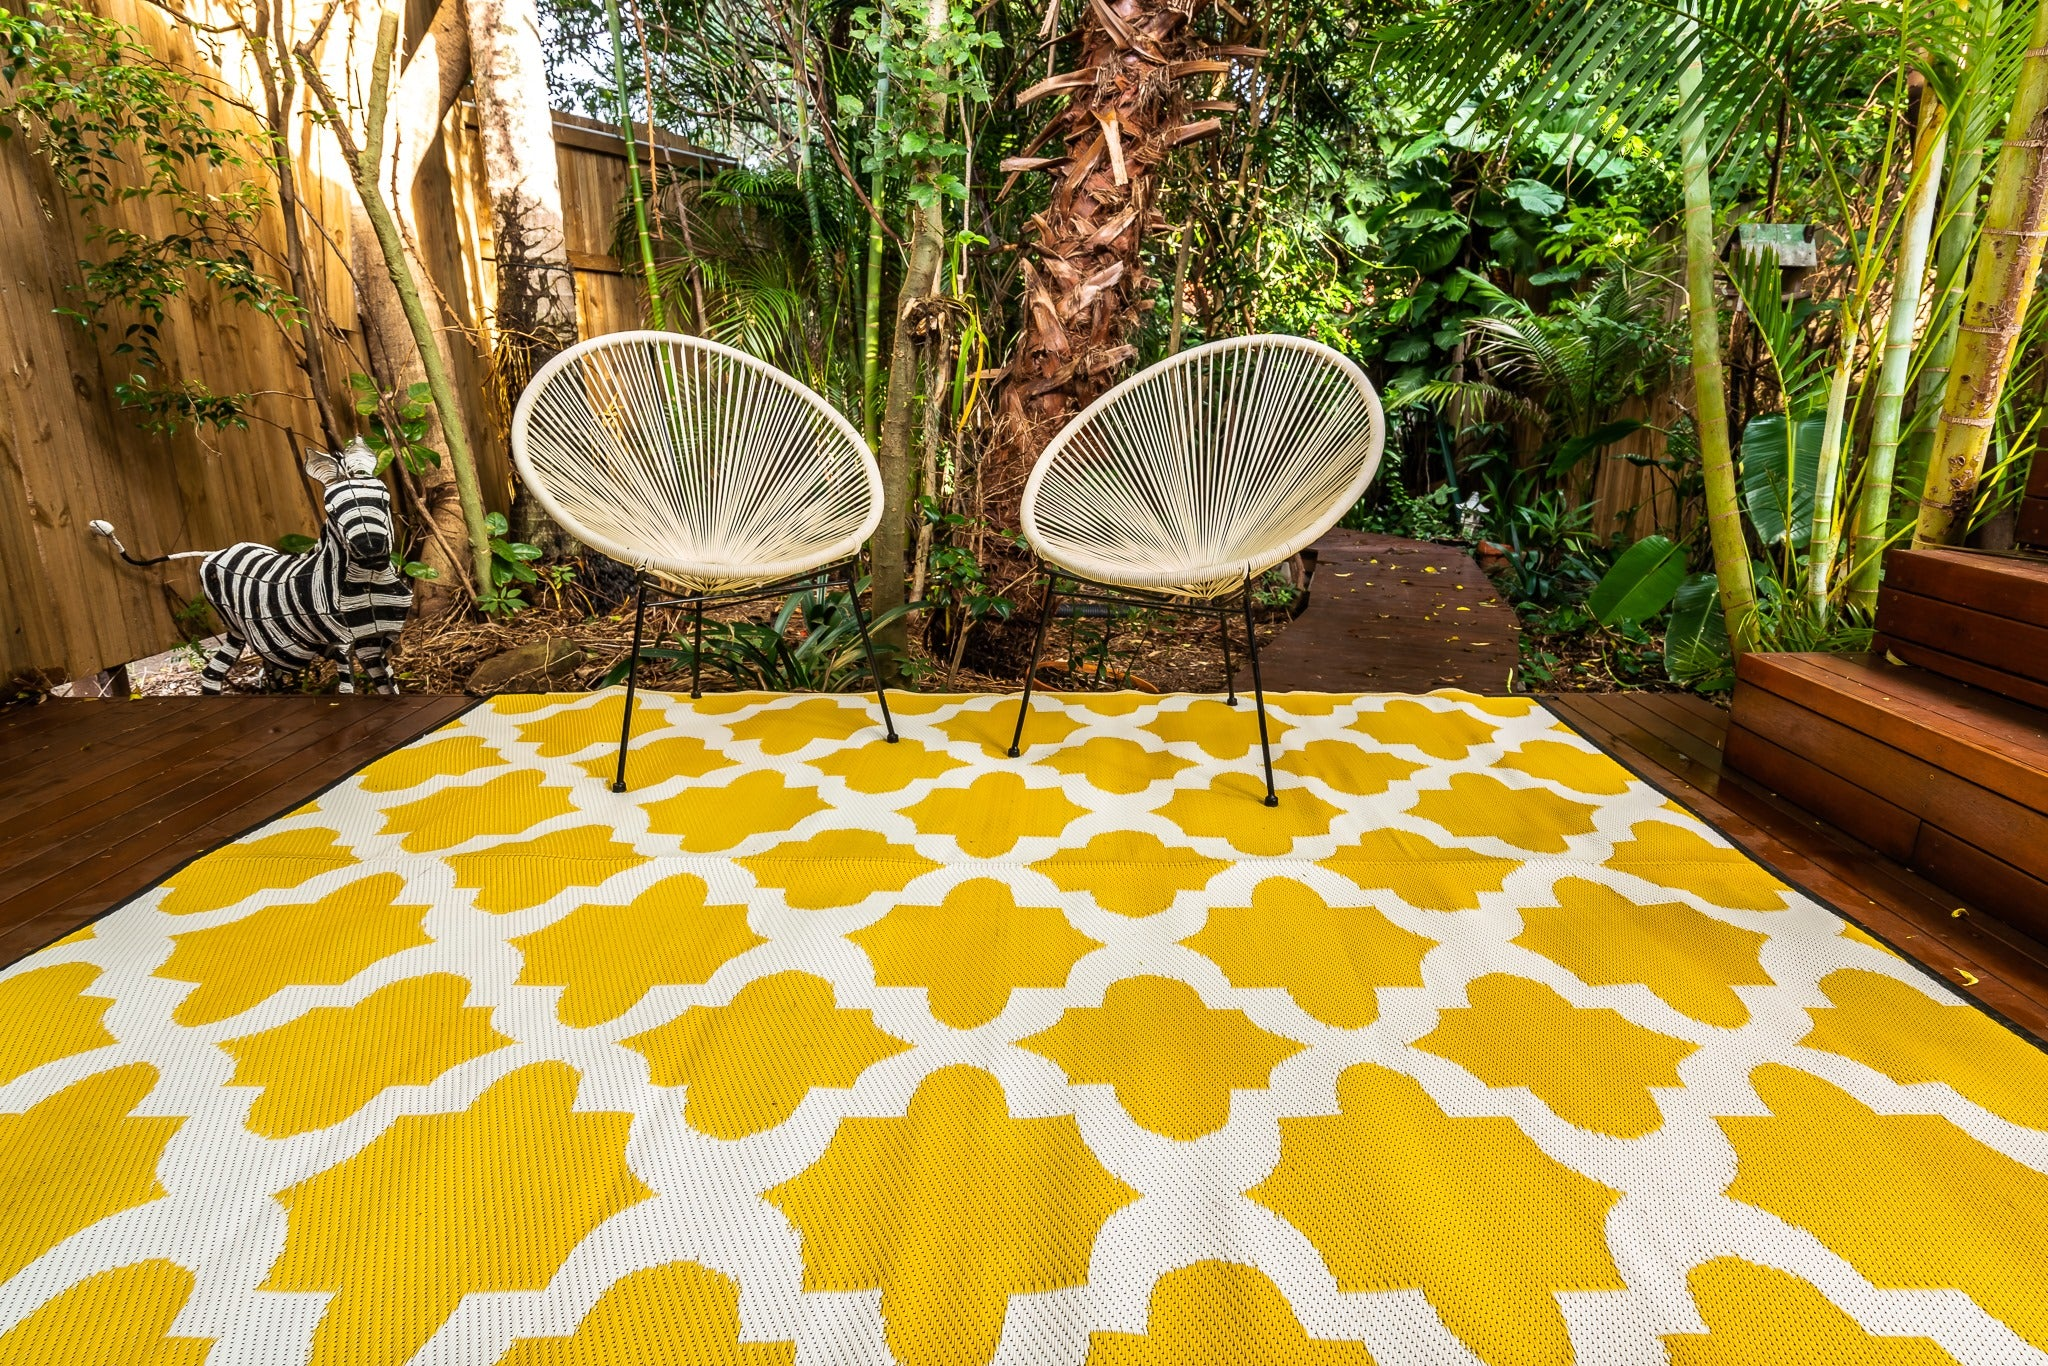 Outdoor Rug Morocco Yellow - Xcelerator Onlinenz | Shop Designer Outdoor Rugs and Vanity Mirrors